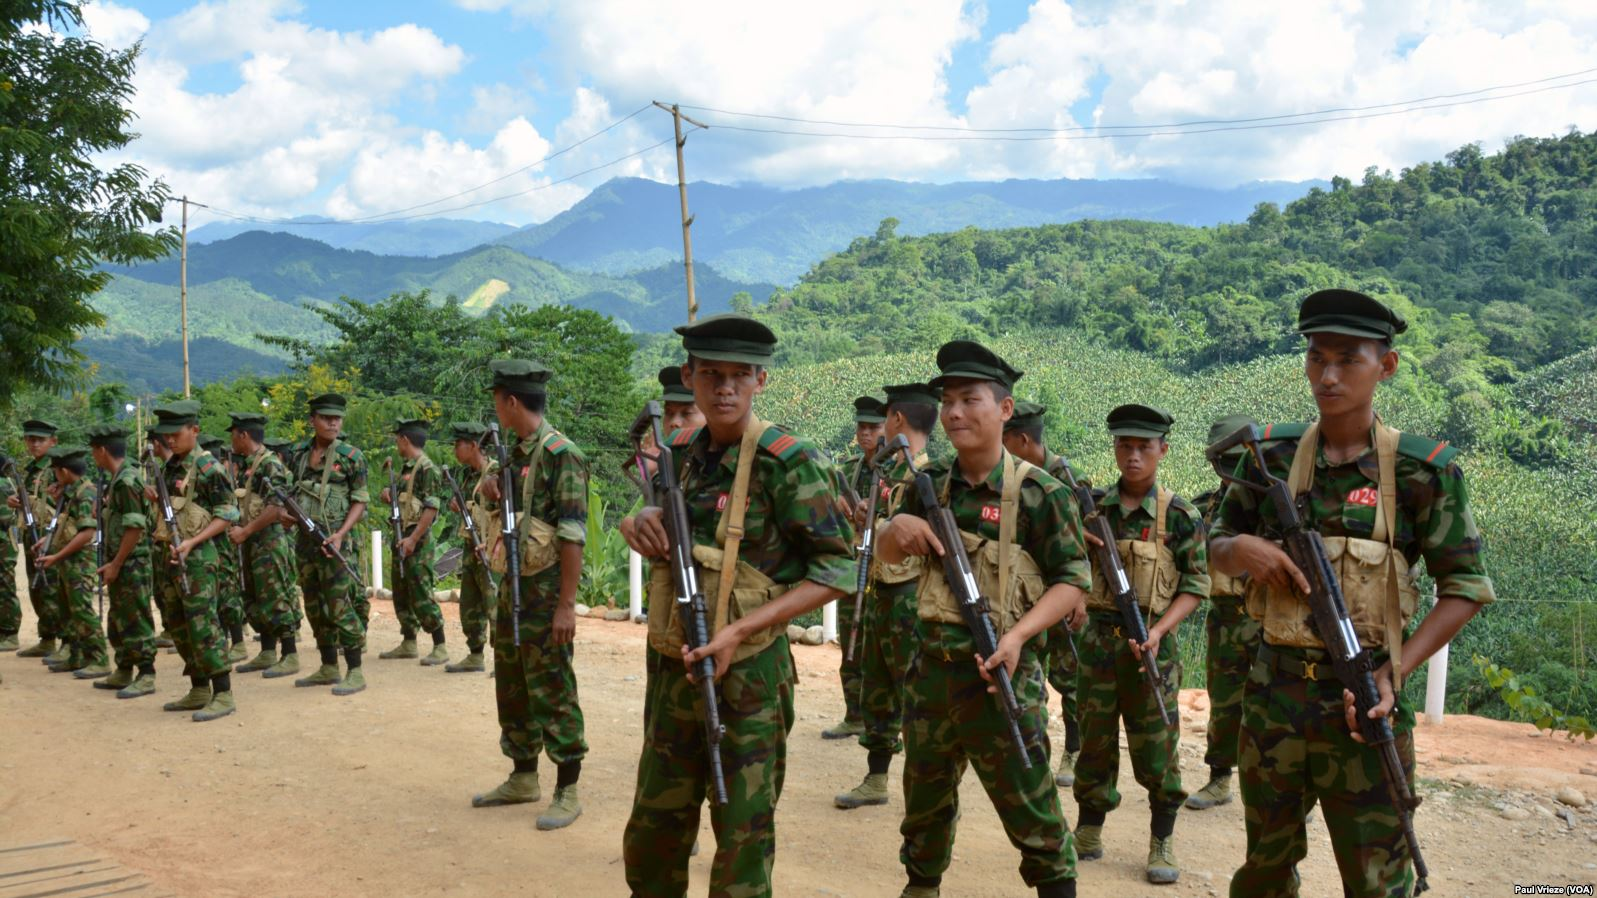 Kachin Independence Army cadets in Laiza (Paul Vrieze VOA)